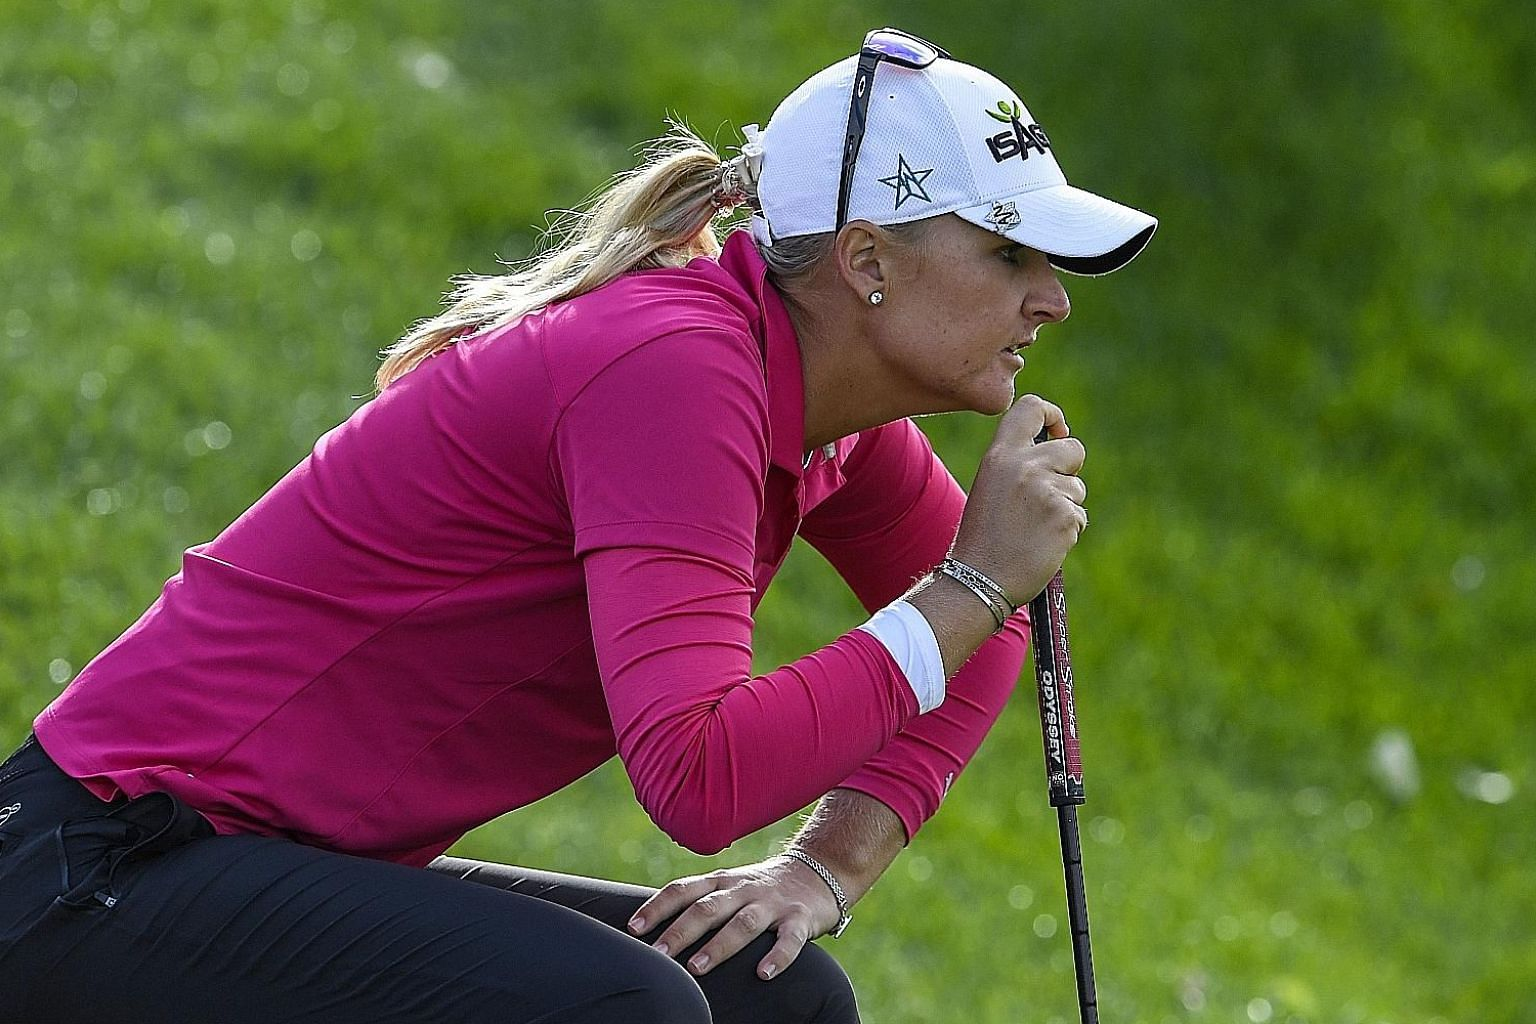 Sweden's Anna Nordqvist clinched her second Major win with victory at the Evian Championship yesterday, coming from five strokes back to take the title.